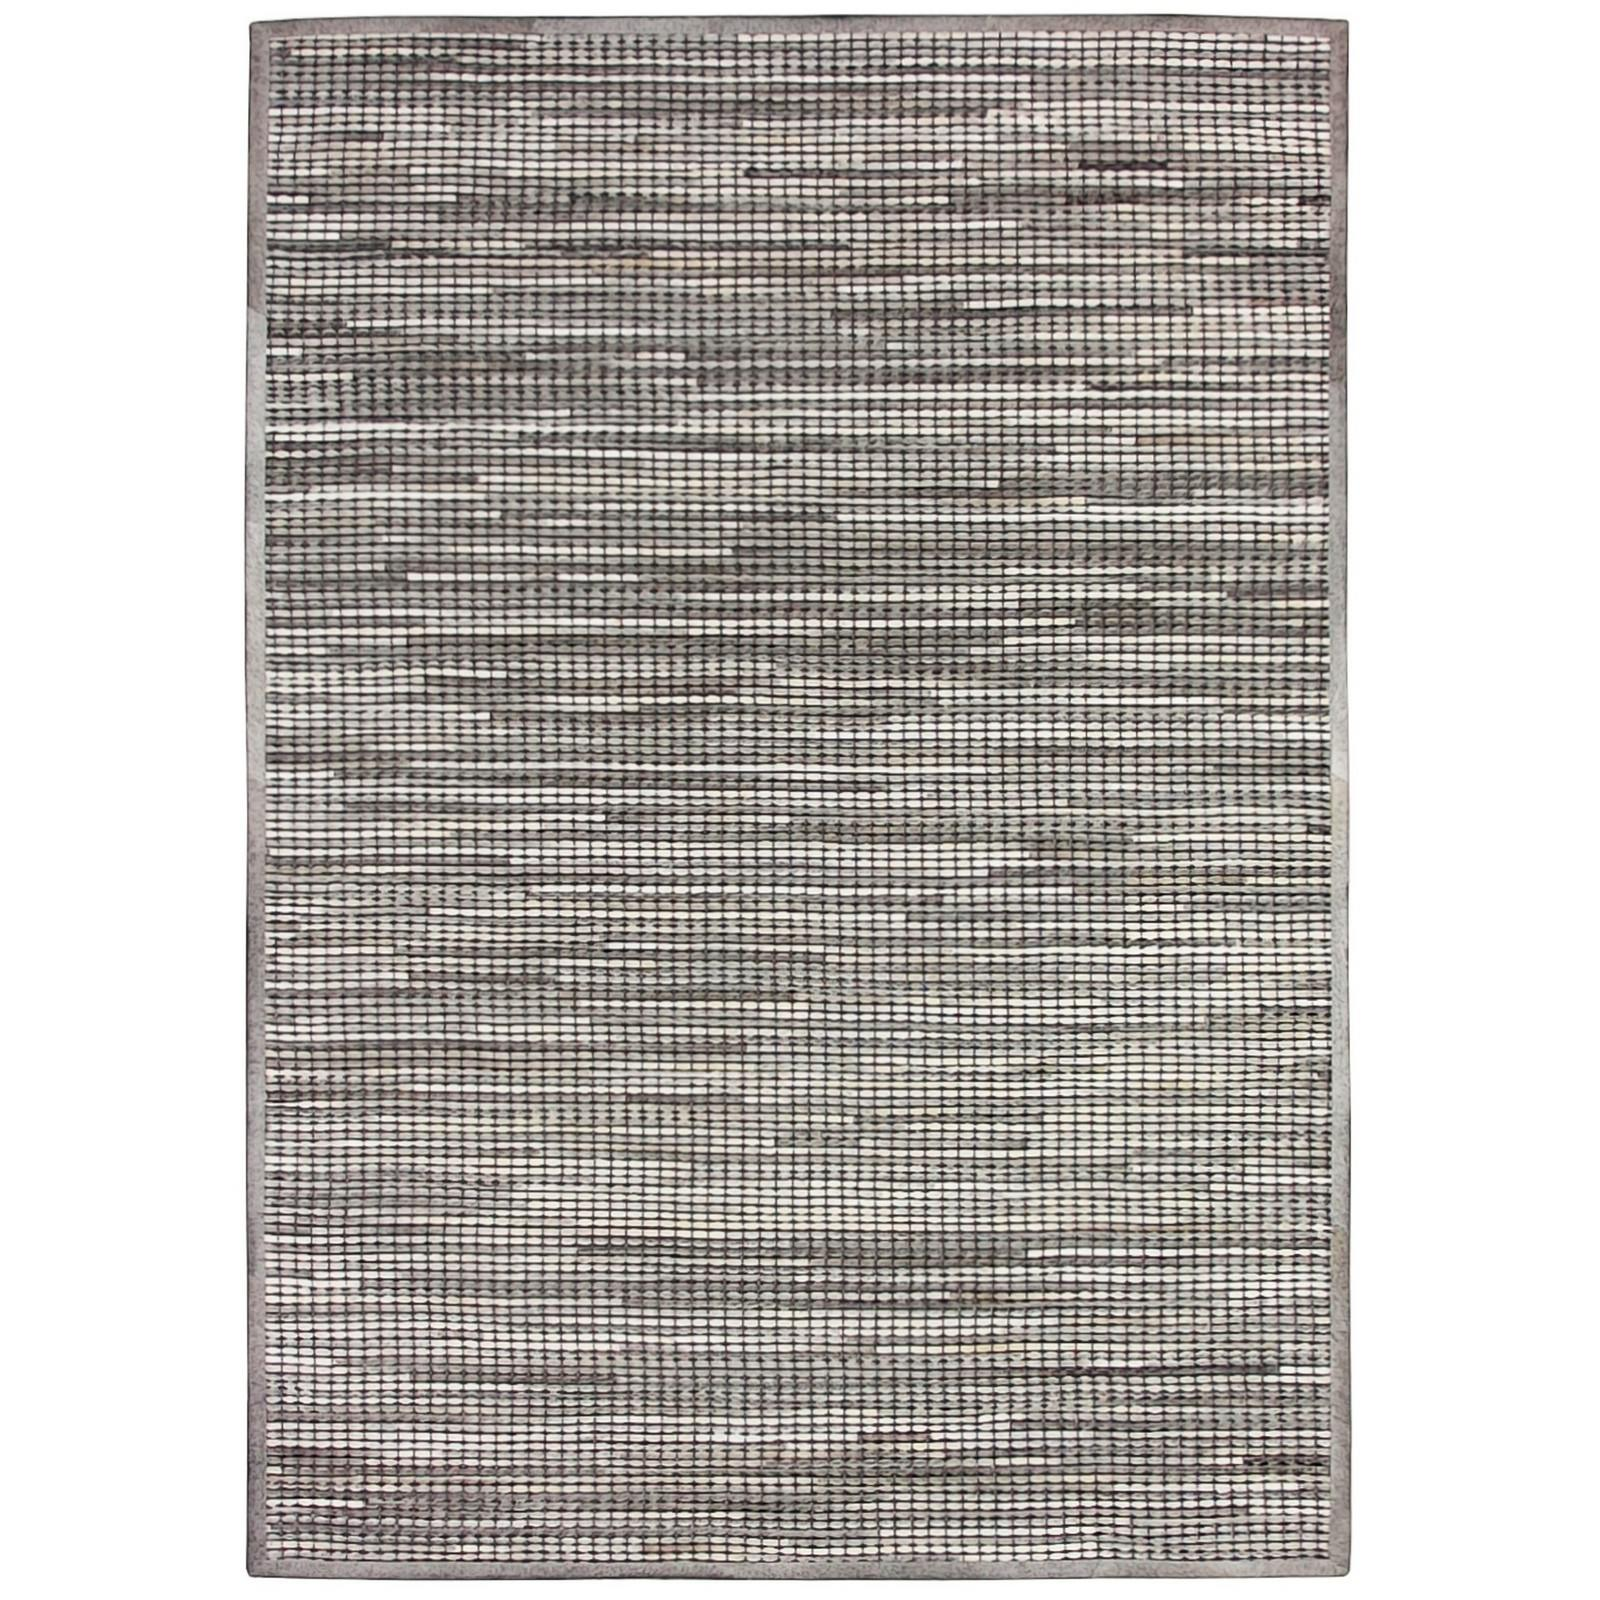 Chase Handwoven Hide & Leather Rug, 160x230cm, Grey